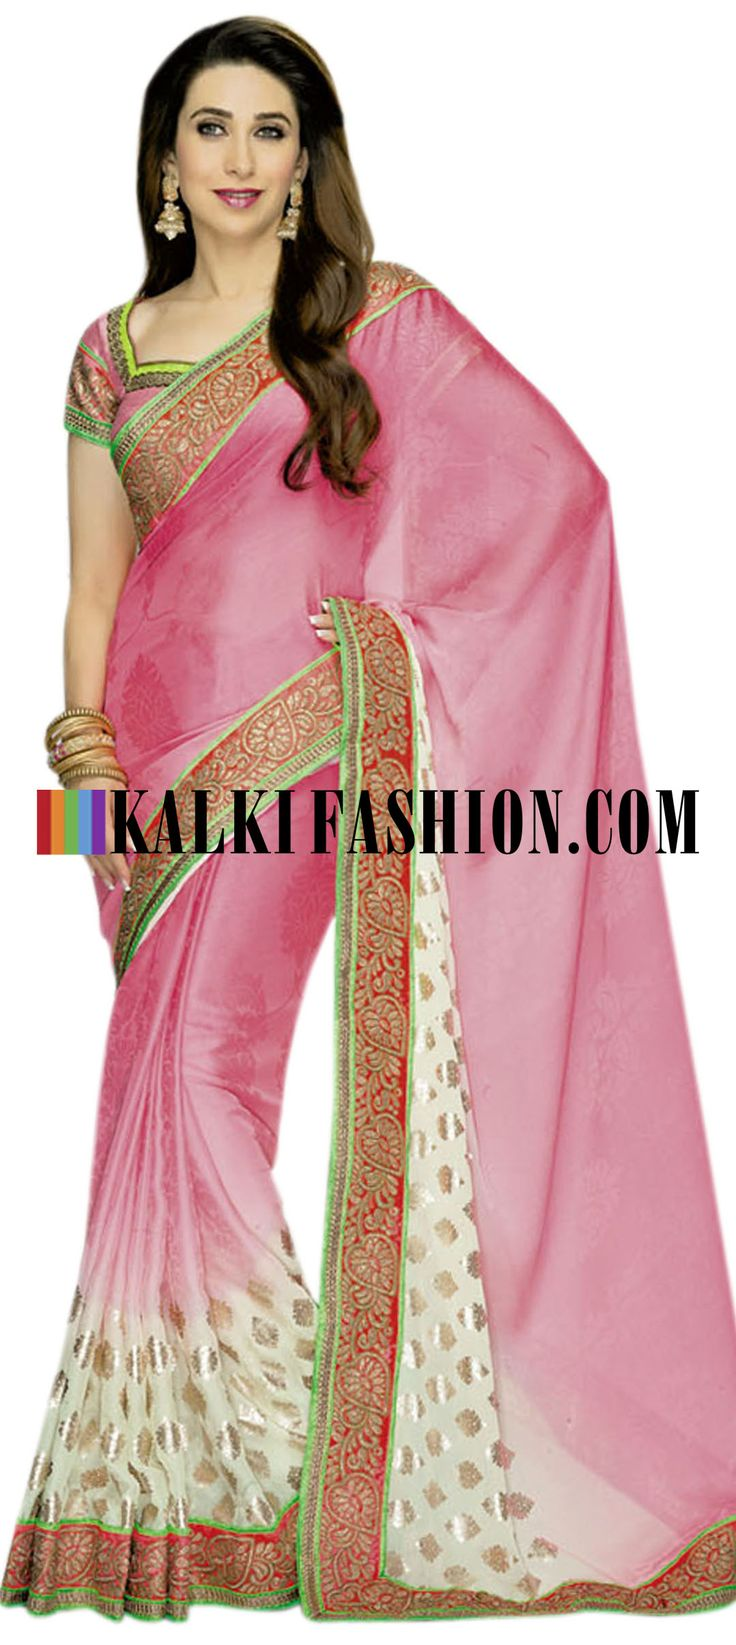 Buy it now  http://www.kalkifashion.com/shaded-pink-and-cream-saree-with-border-work.html Shaded pink and cream saree with border work